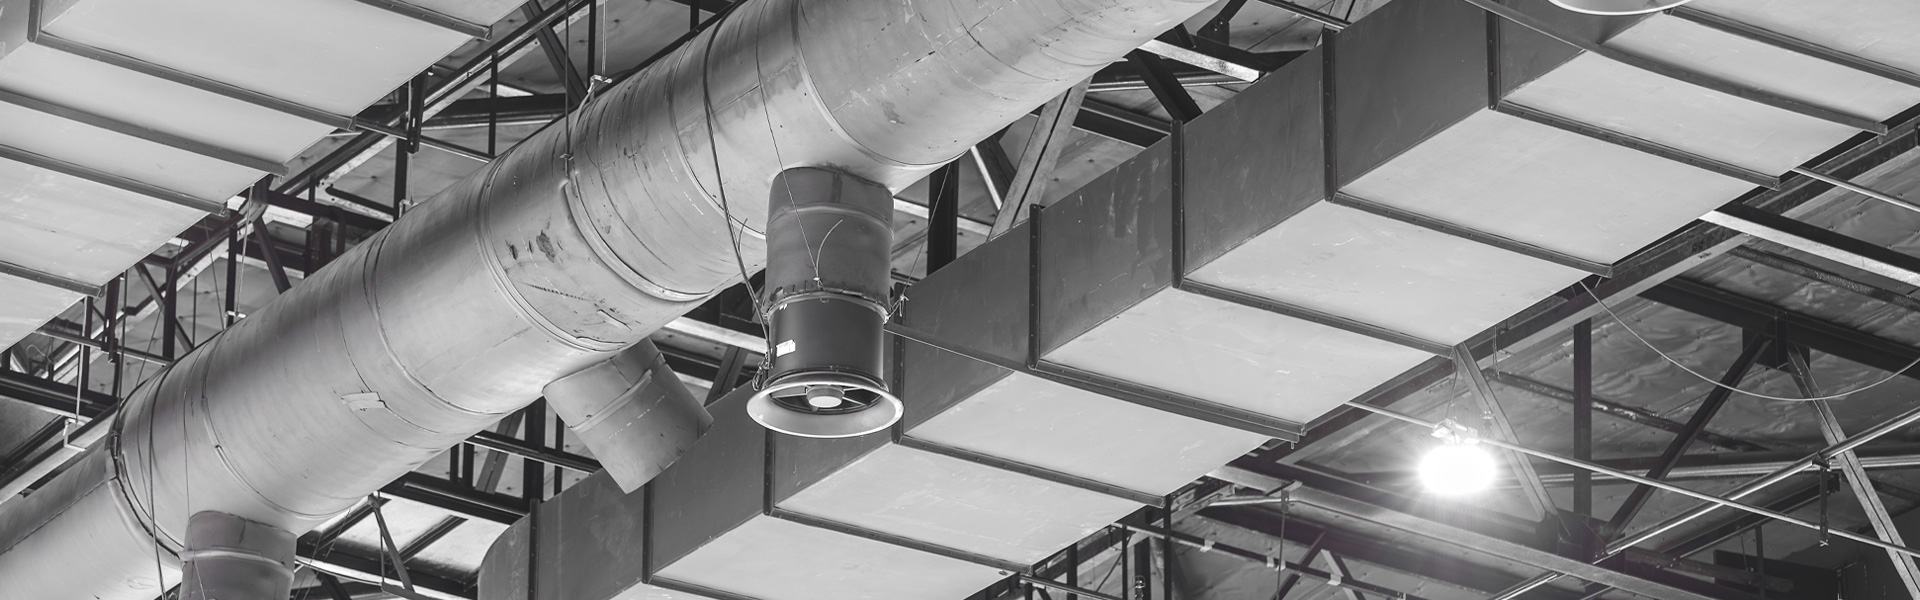 Ventilation System at a Commercial Facility